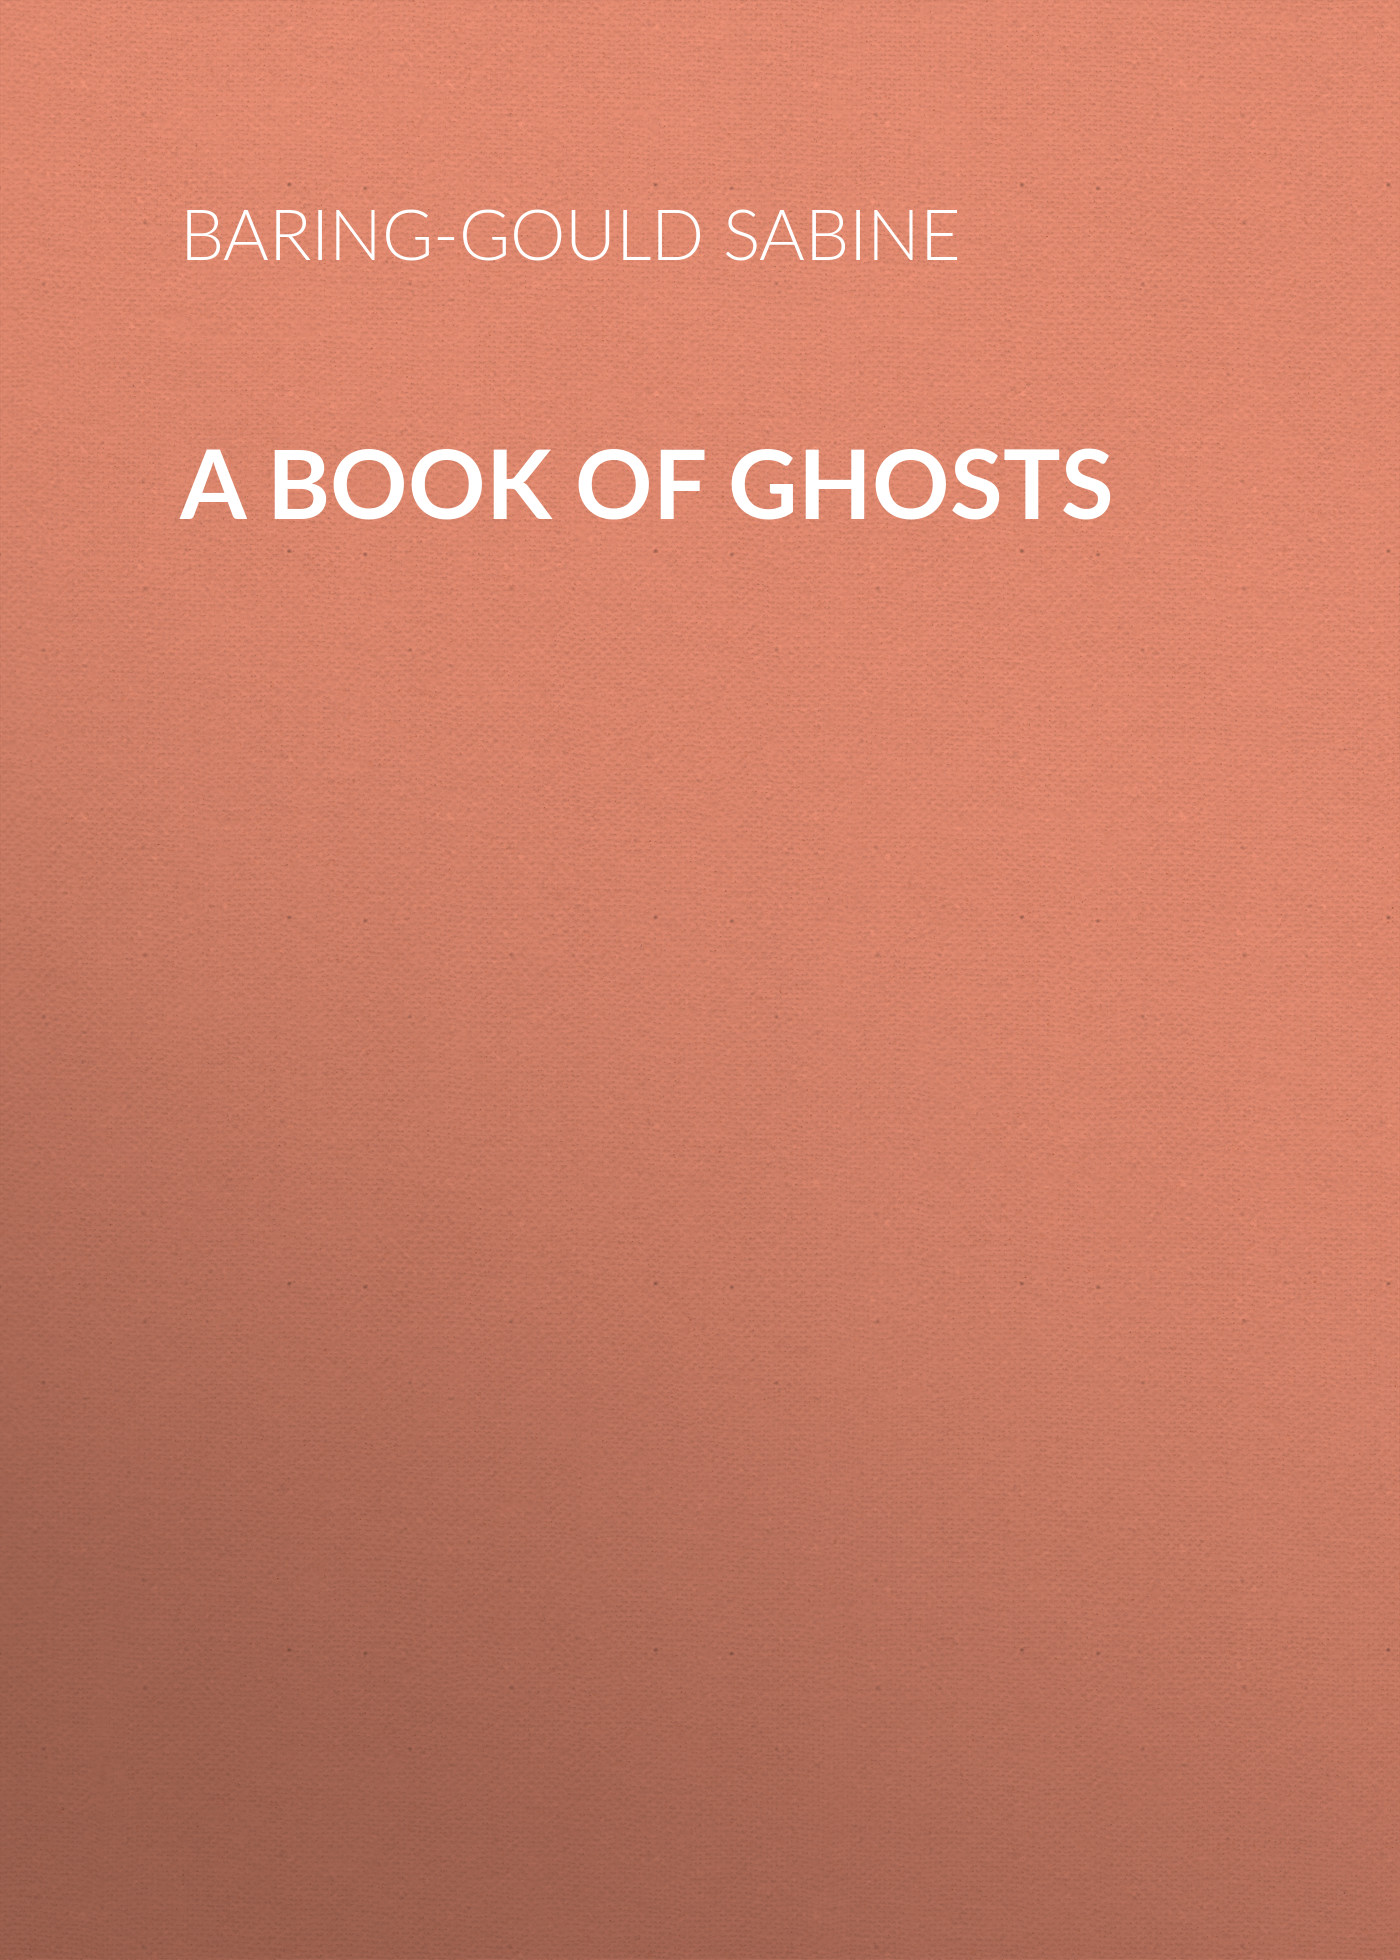 Baring-Gould Sabine A Book of Ghosts baring gould sabine a book of the pyrenees